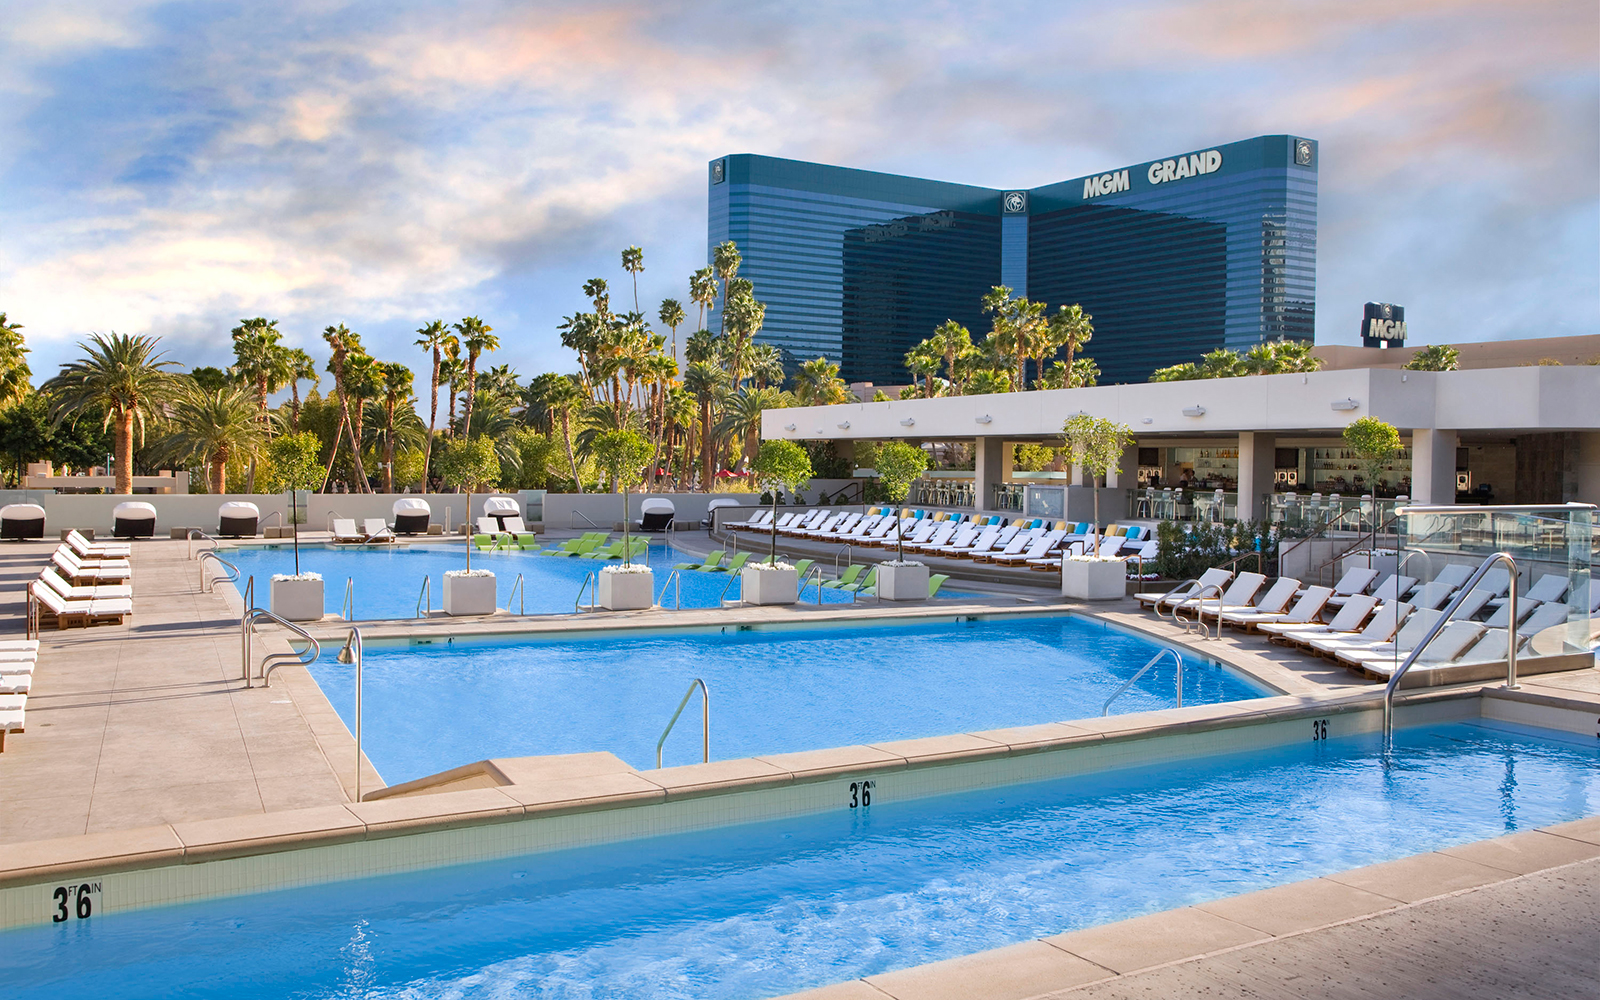 Best Pools in Las Vegas: MGM Grand